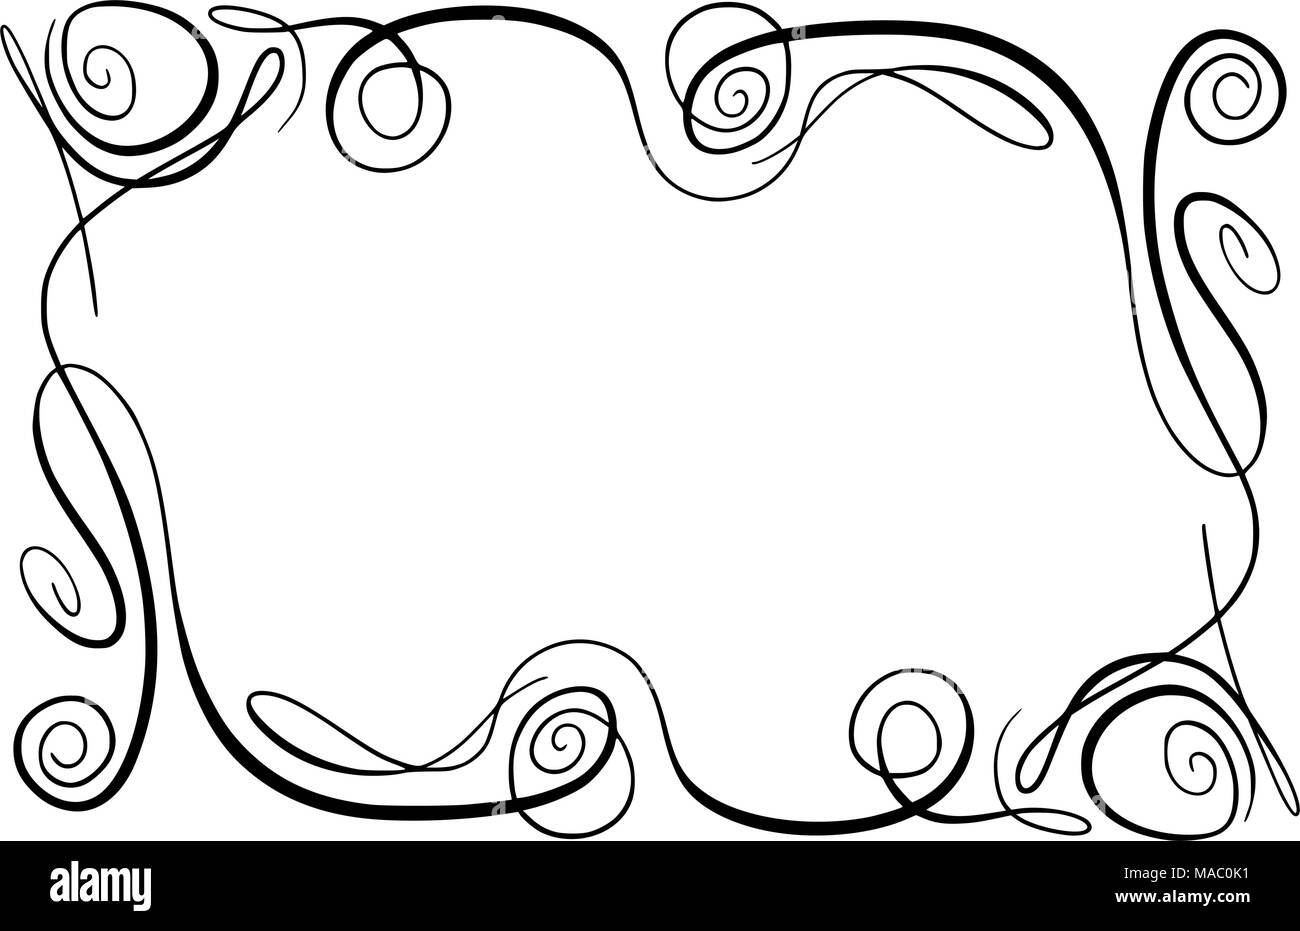 Flourish Vector Frame. Rectangle with squiggles, twirls and embellishments for image and text elements. Hand drawn black highlighting curlicue border isolated on the white background. Doodle effect. Pencil marks. Cartoon style. Geometric shapes for your design. Sketch look - Stock Image